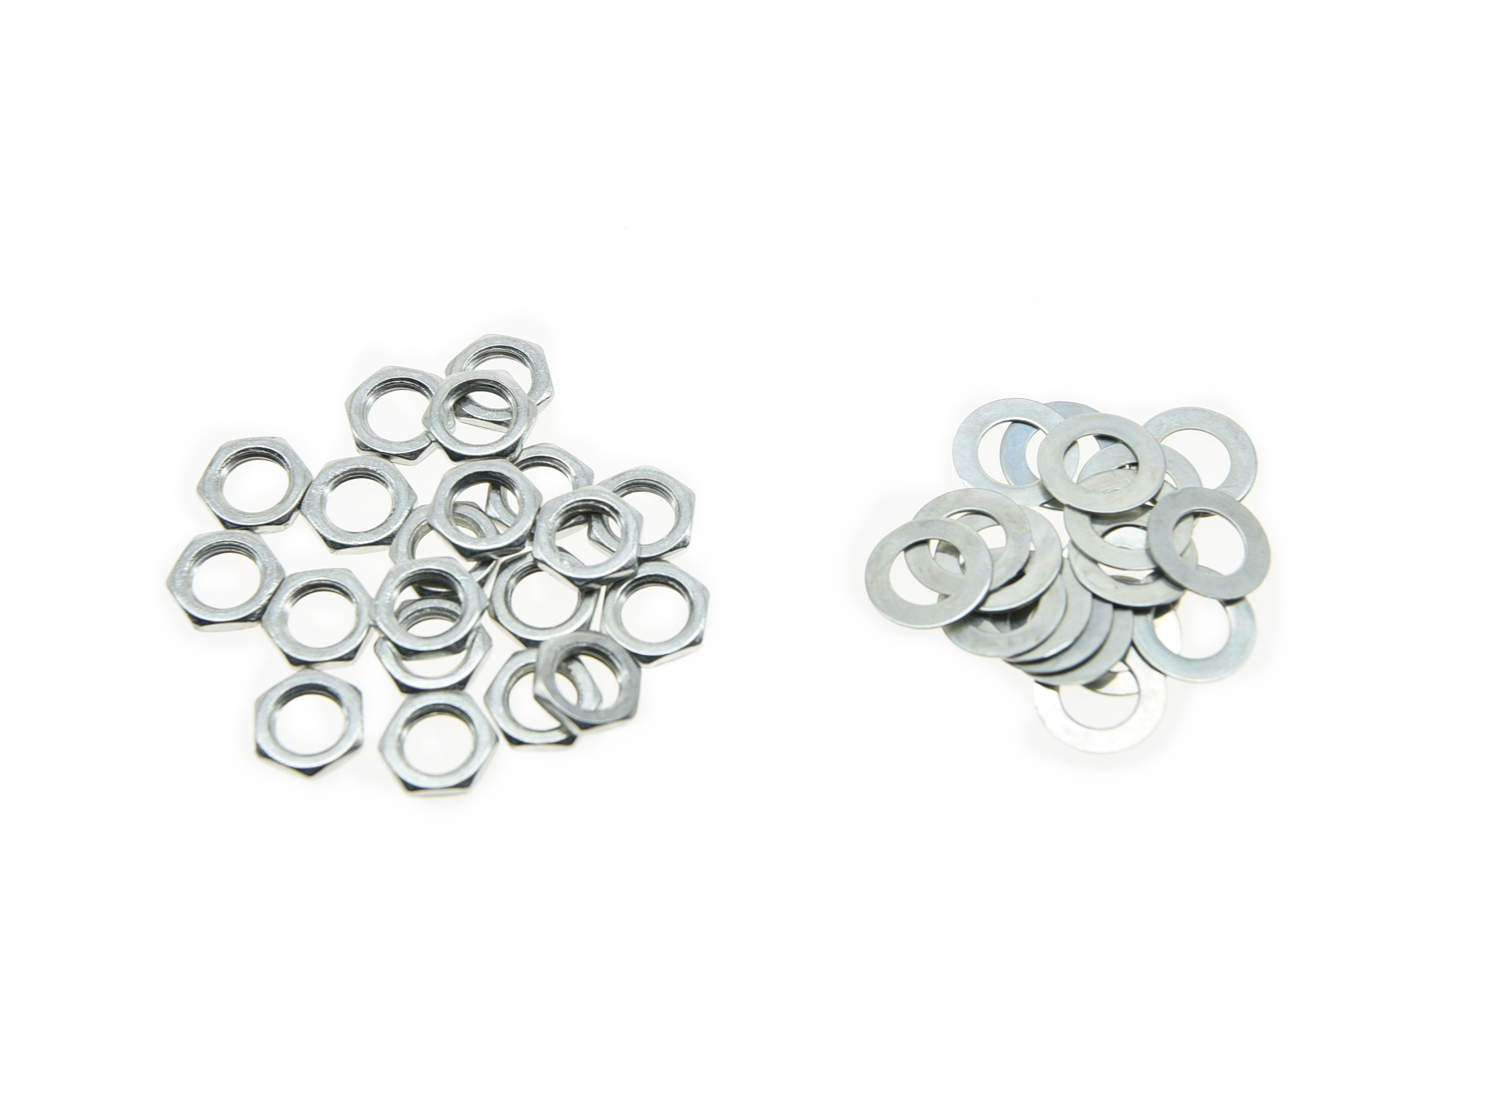 Kaish Pack Of 20 Zinc Metric M7 Guitar Pots Nuts Amp Washers